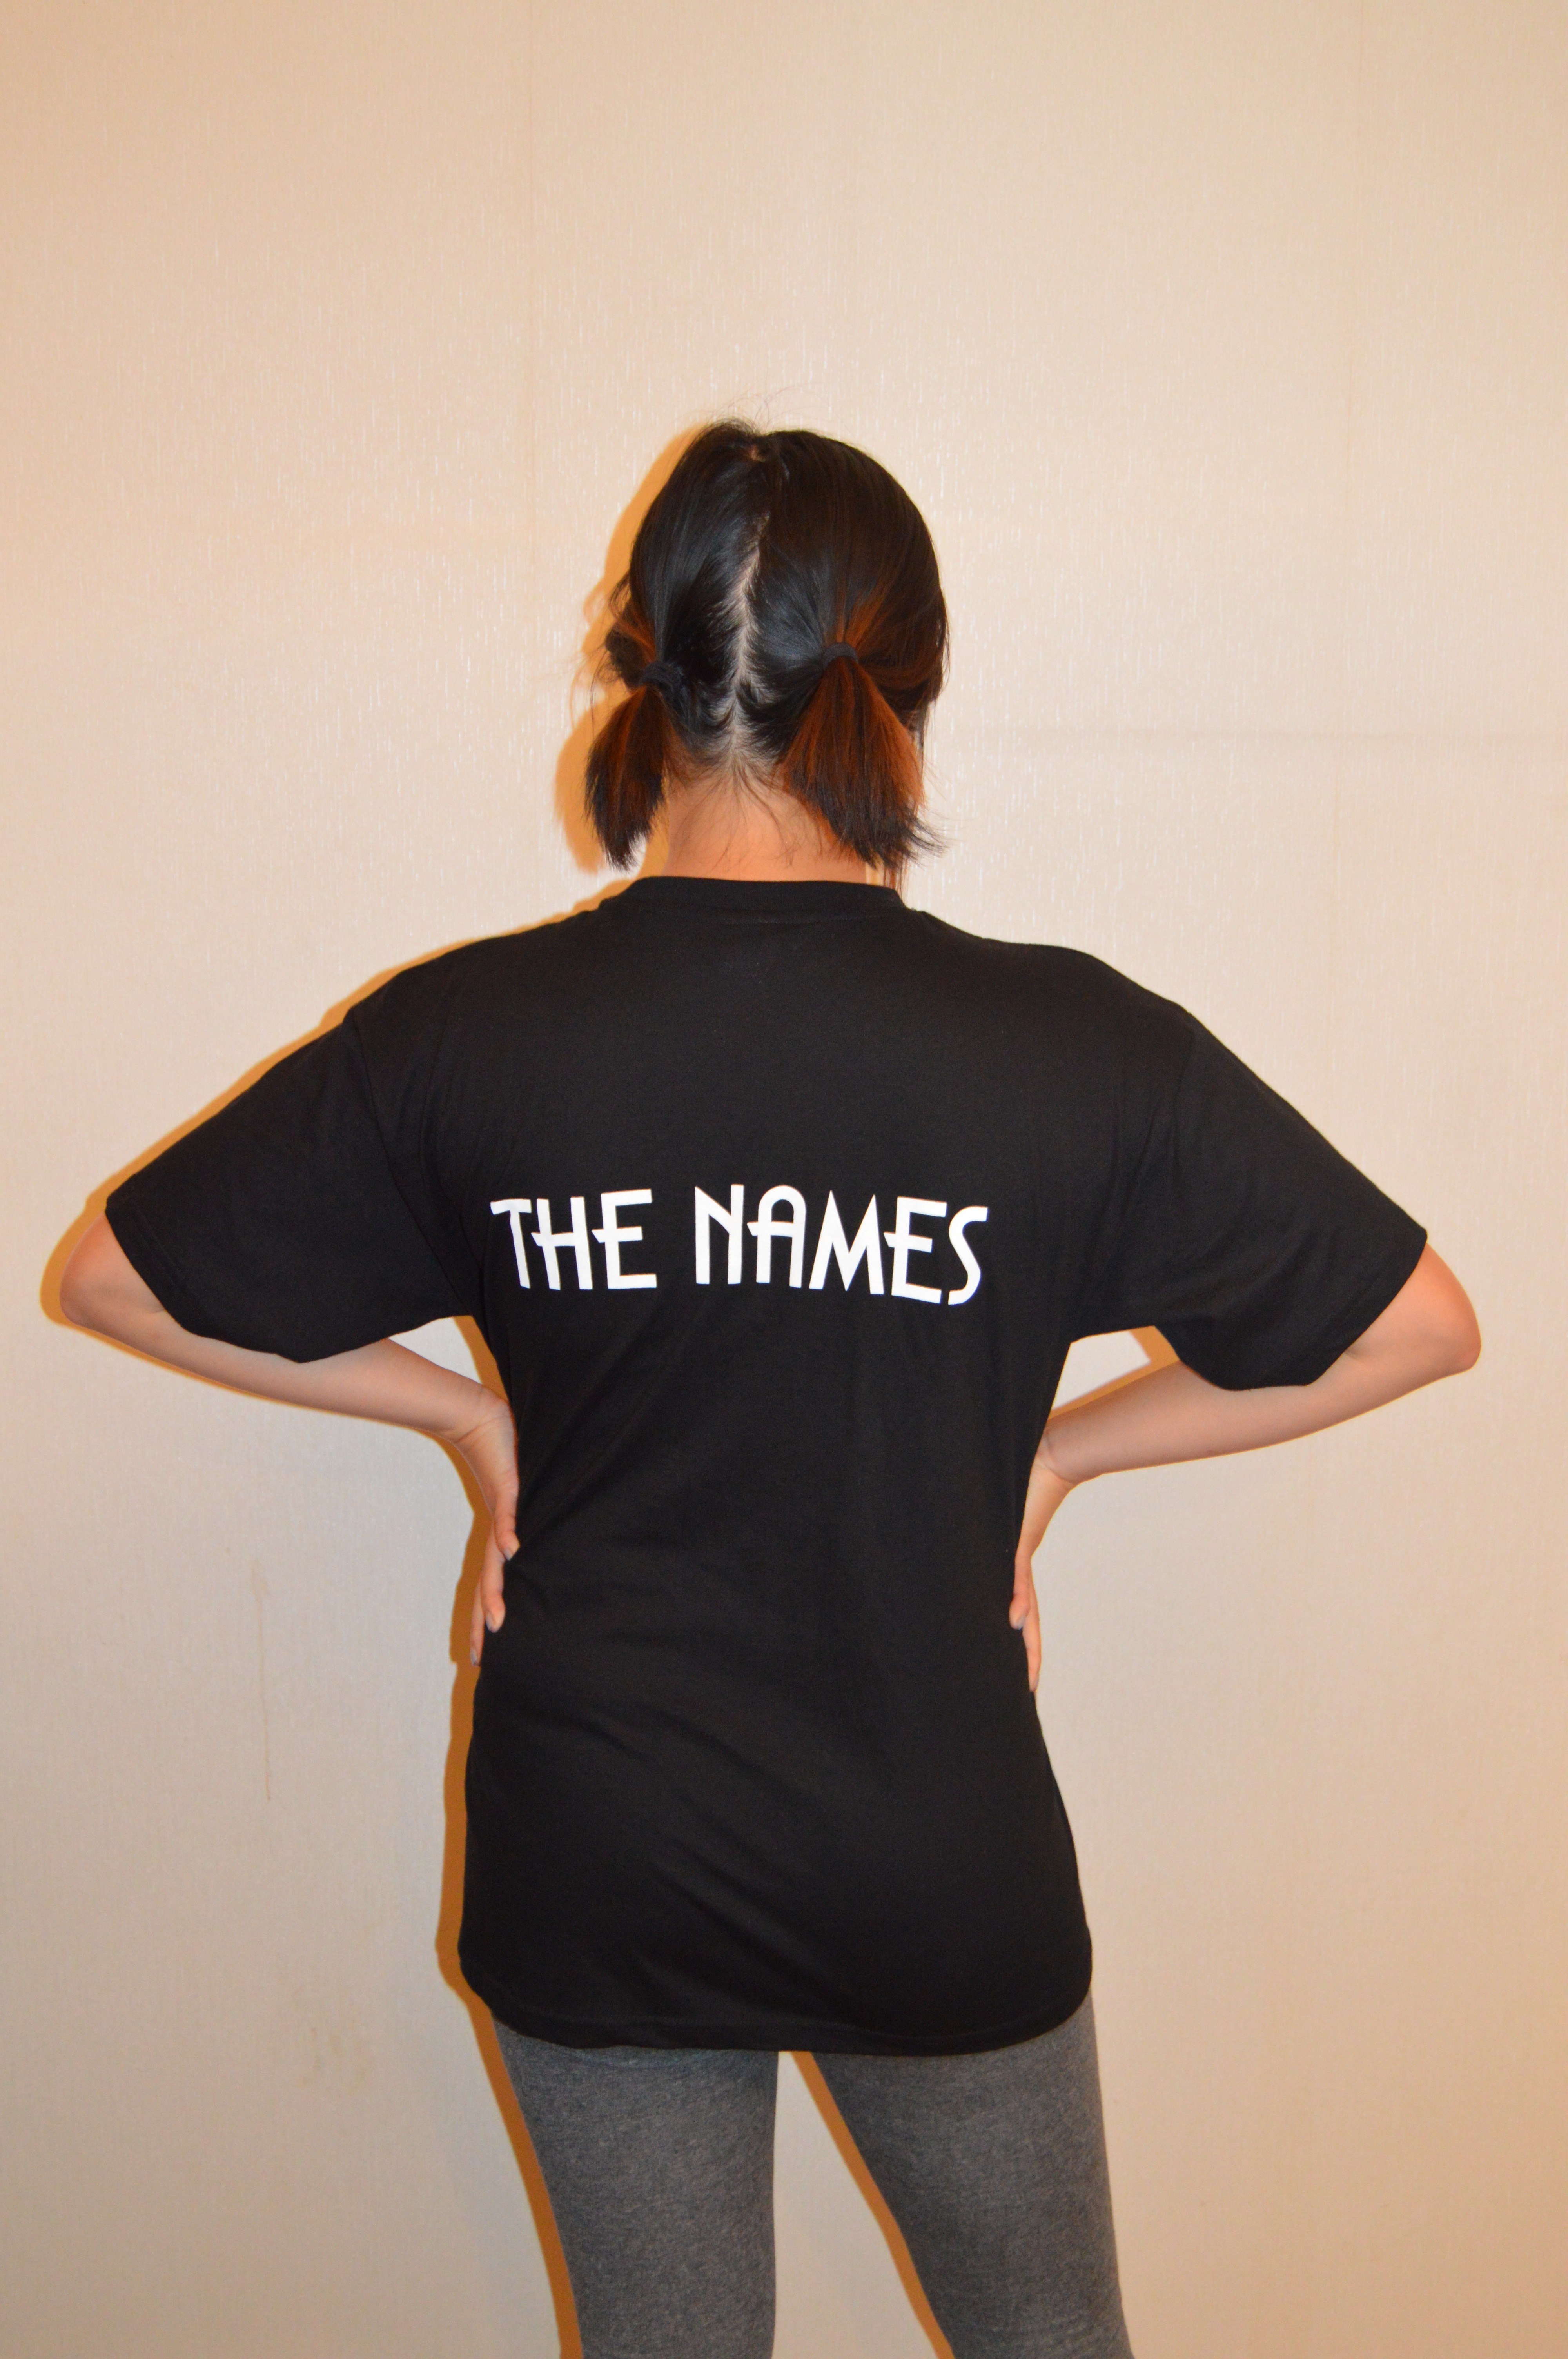 The Names t-shirt